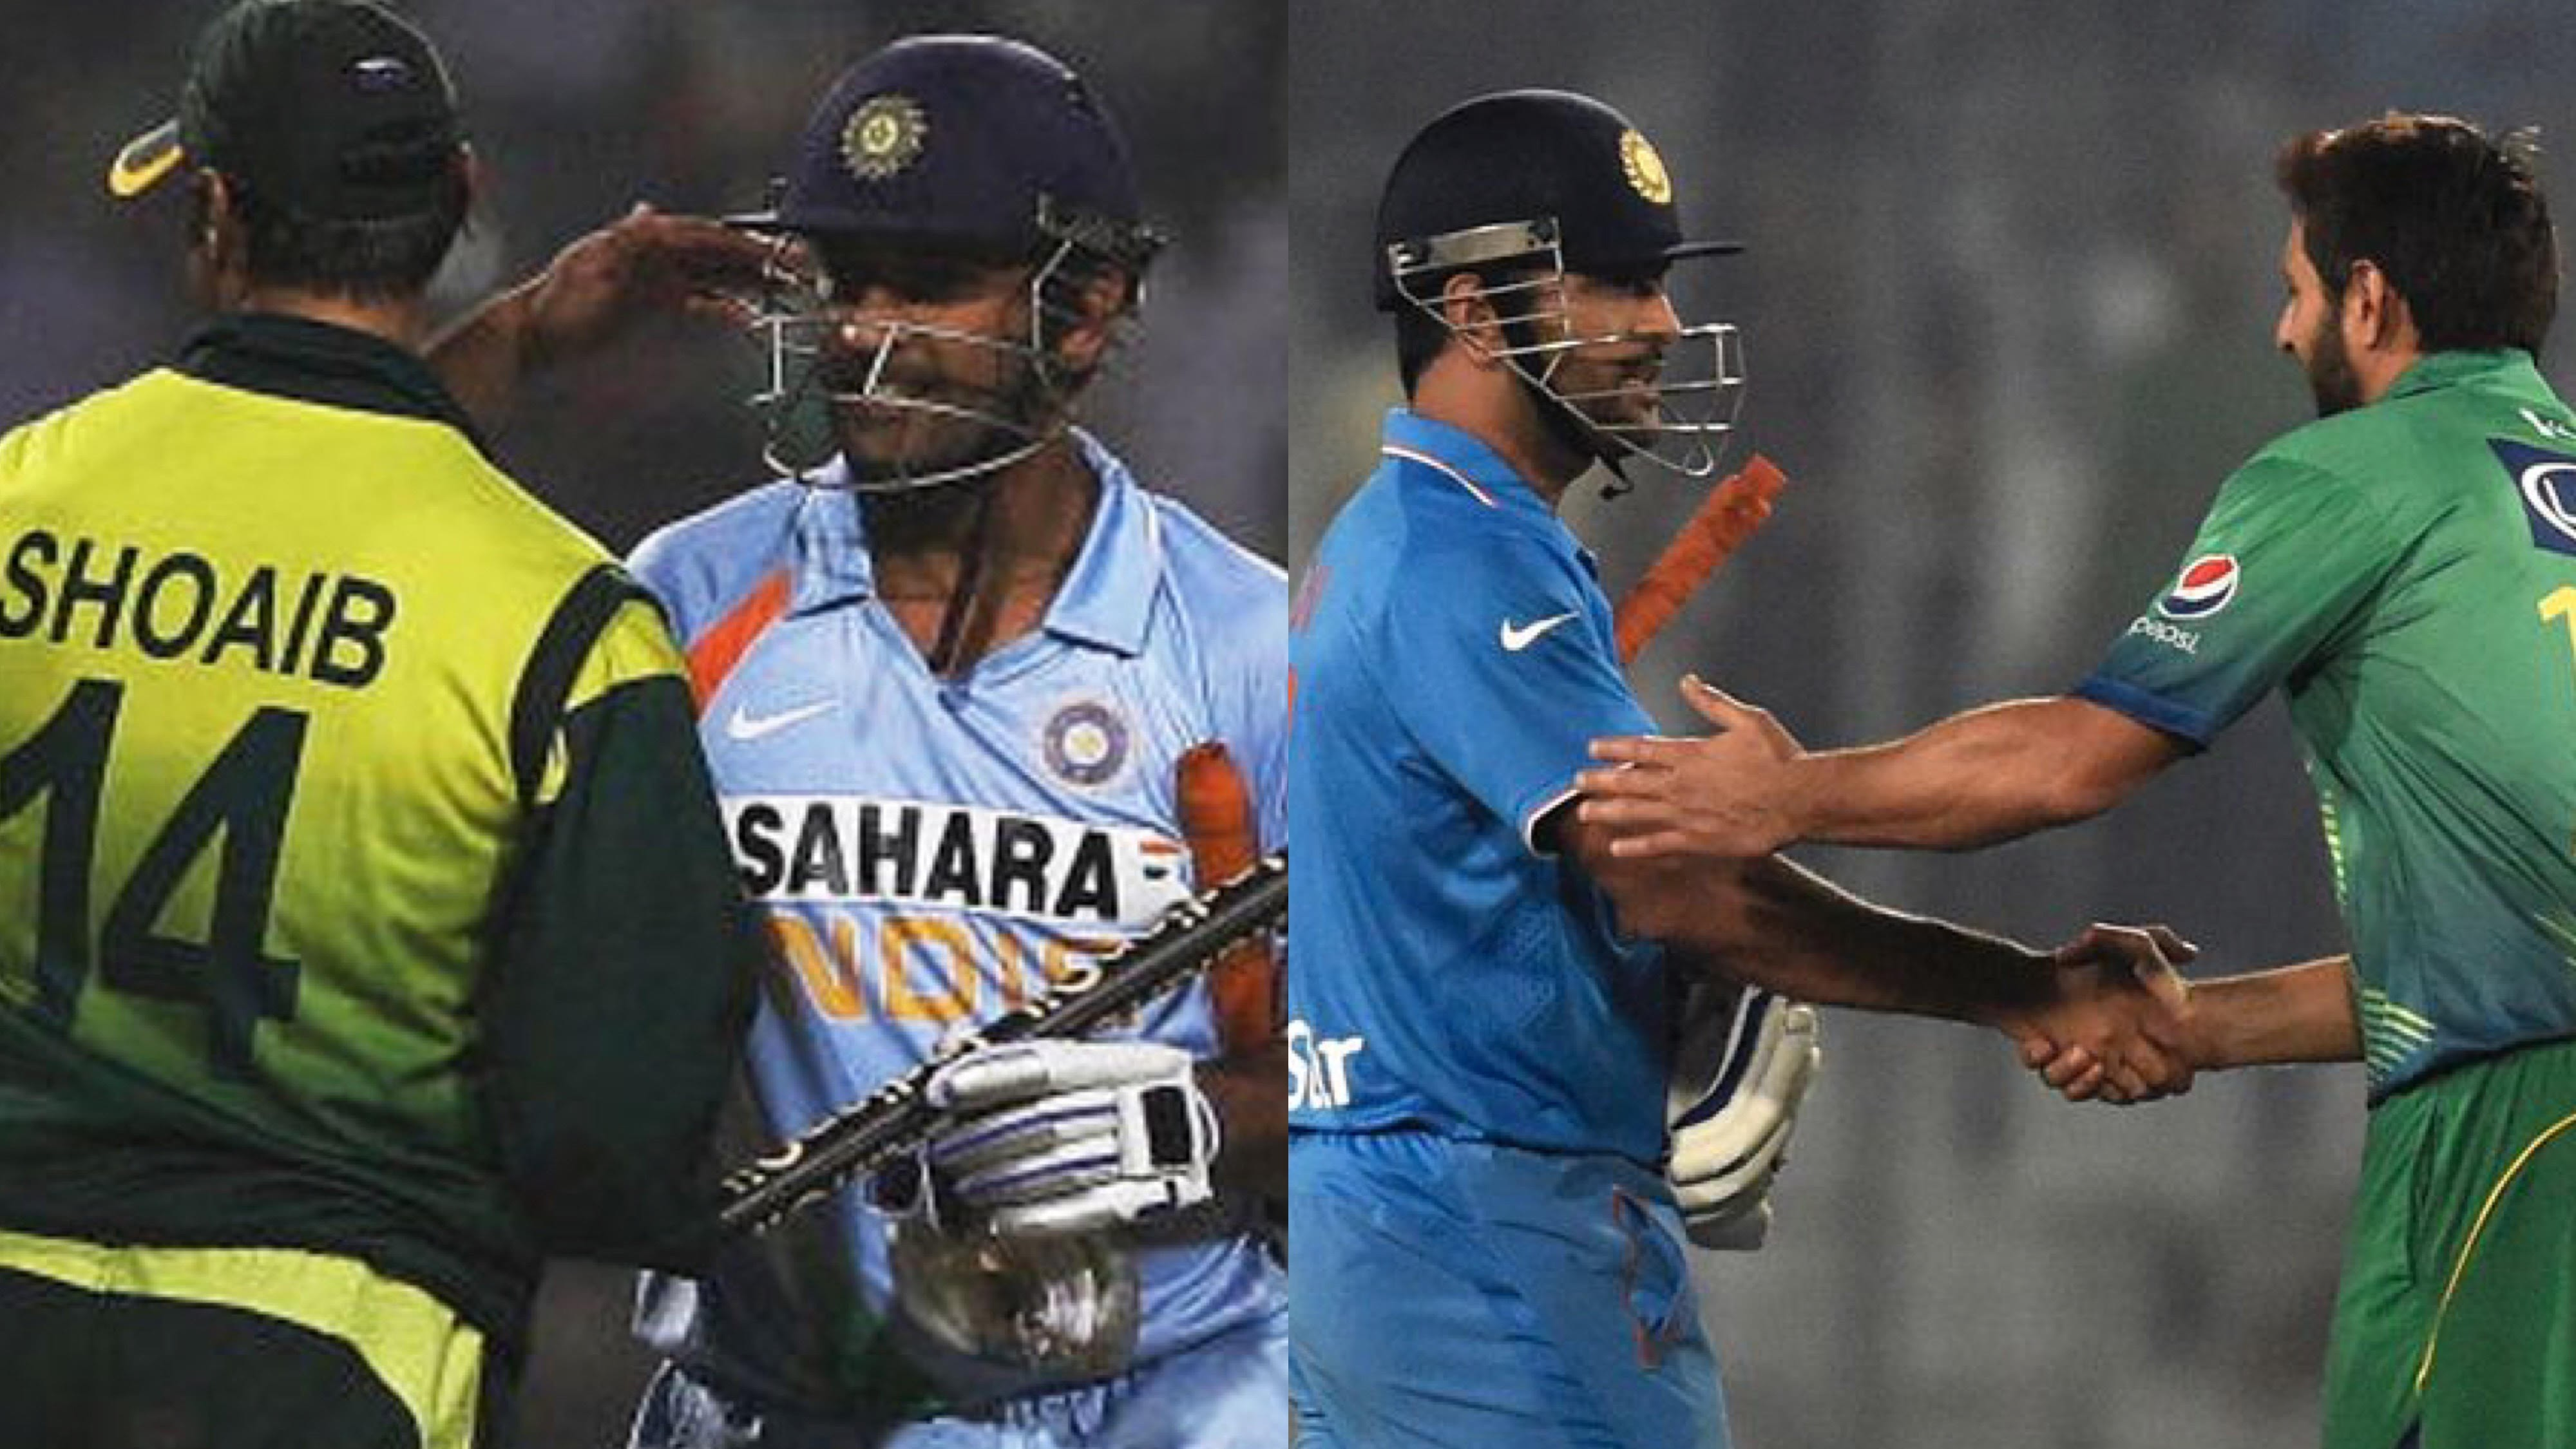 International cricket fraternity rises to applaud MS Dhoni after his retirement